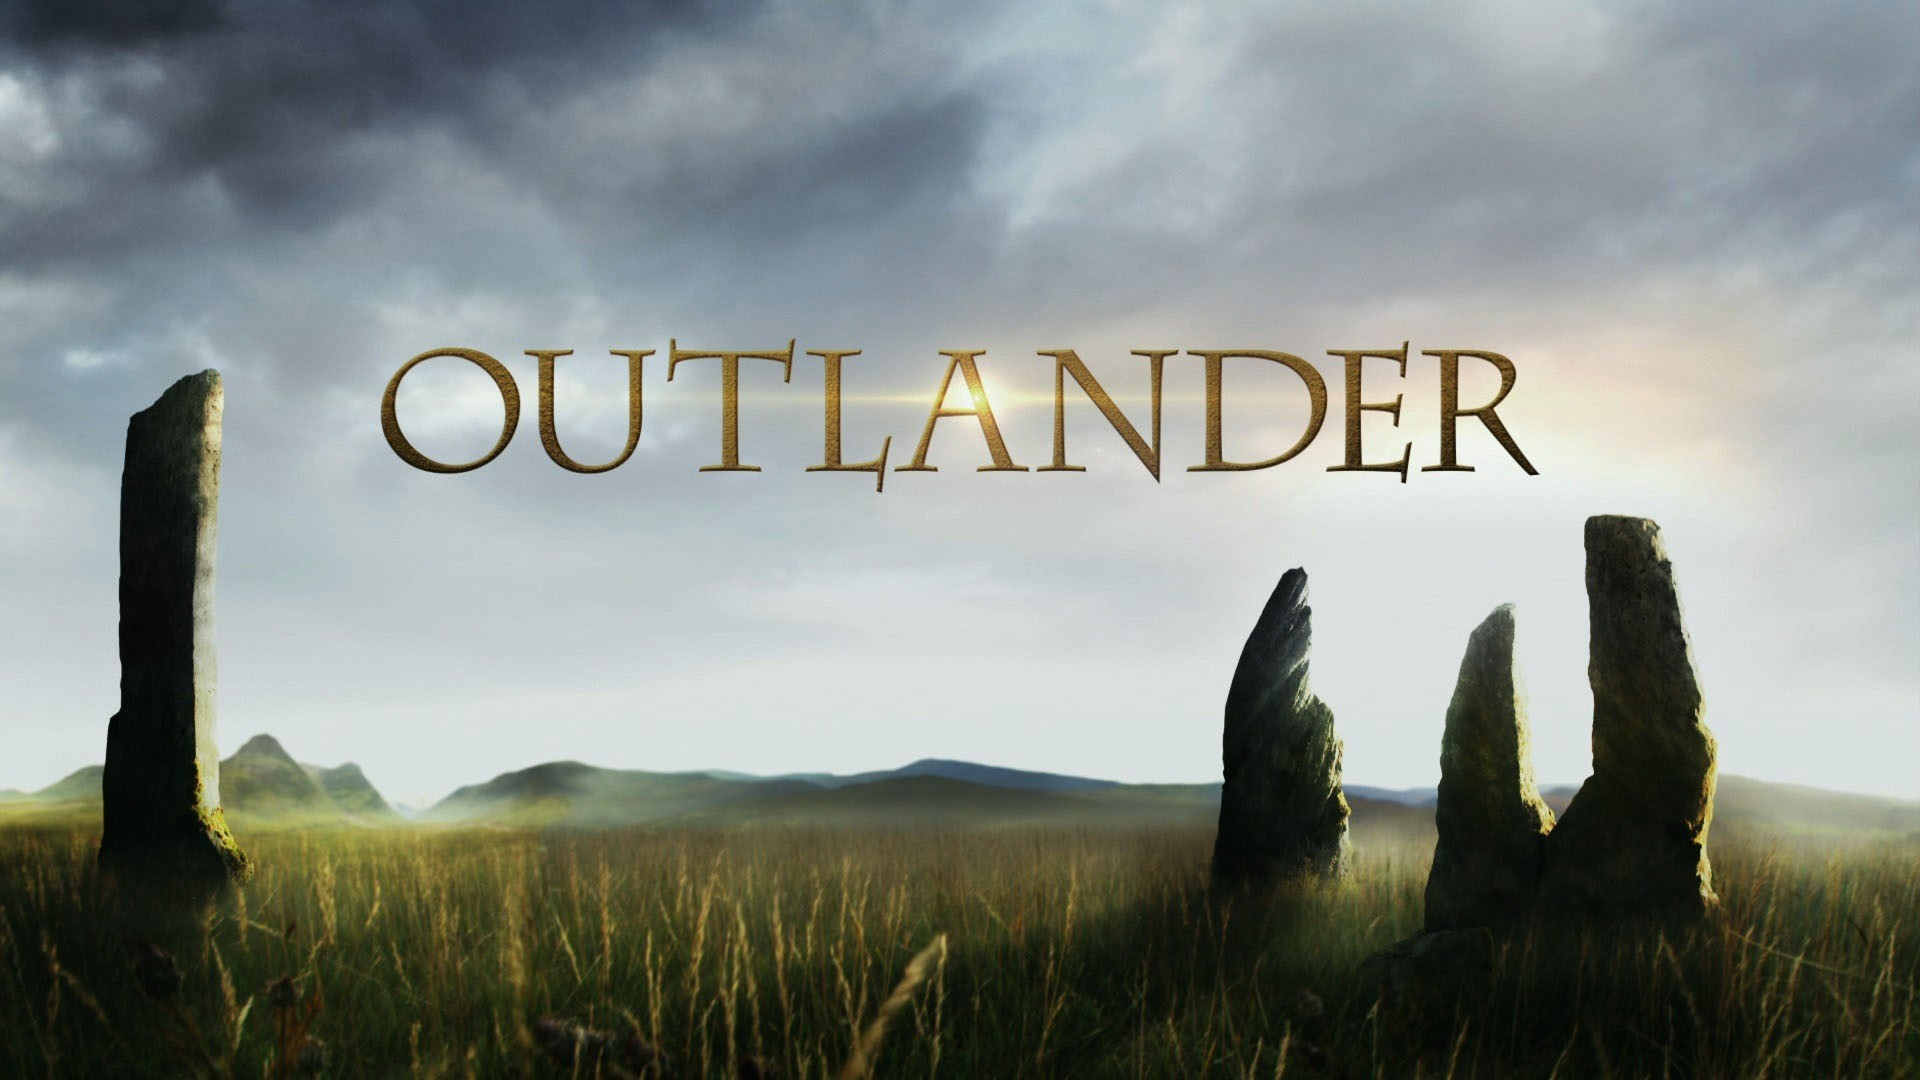 1920x1080 Outlander Source: Keys: outlander, television, wallpaper, wallpapers.  Submitted Anonymously 1 year ago